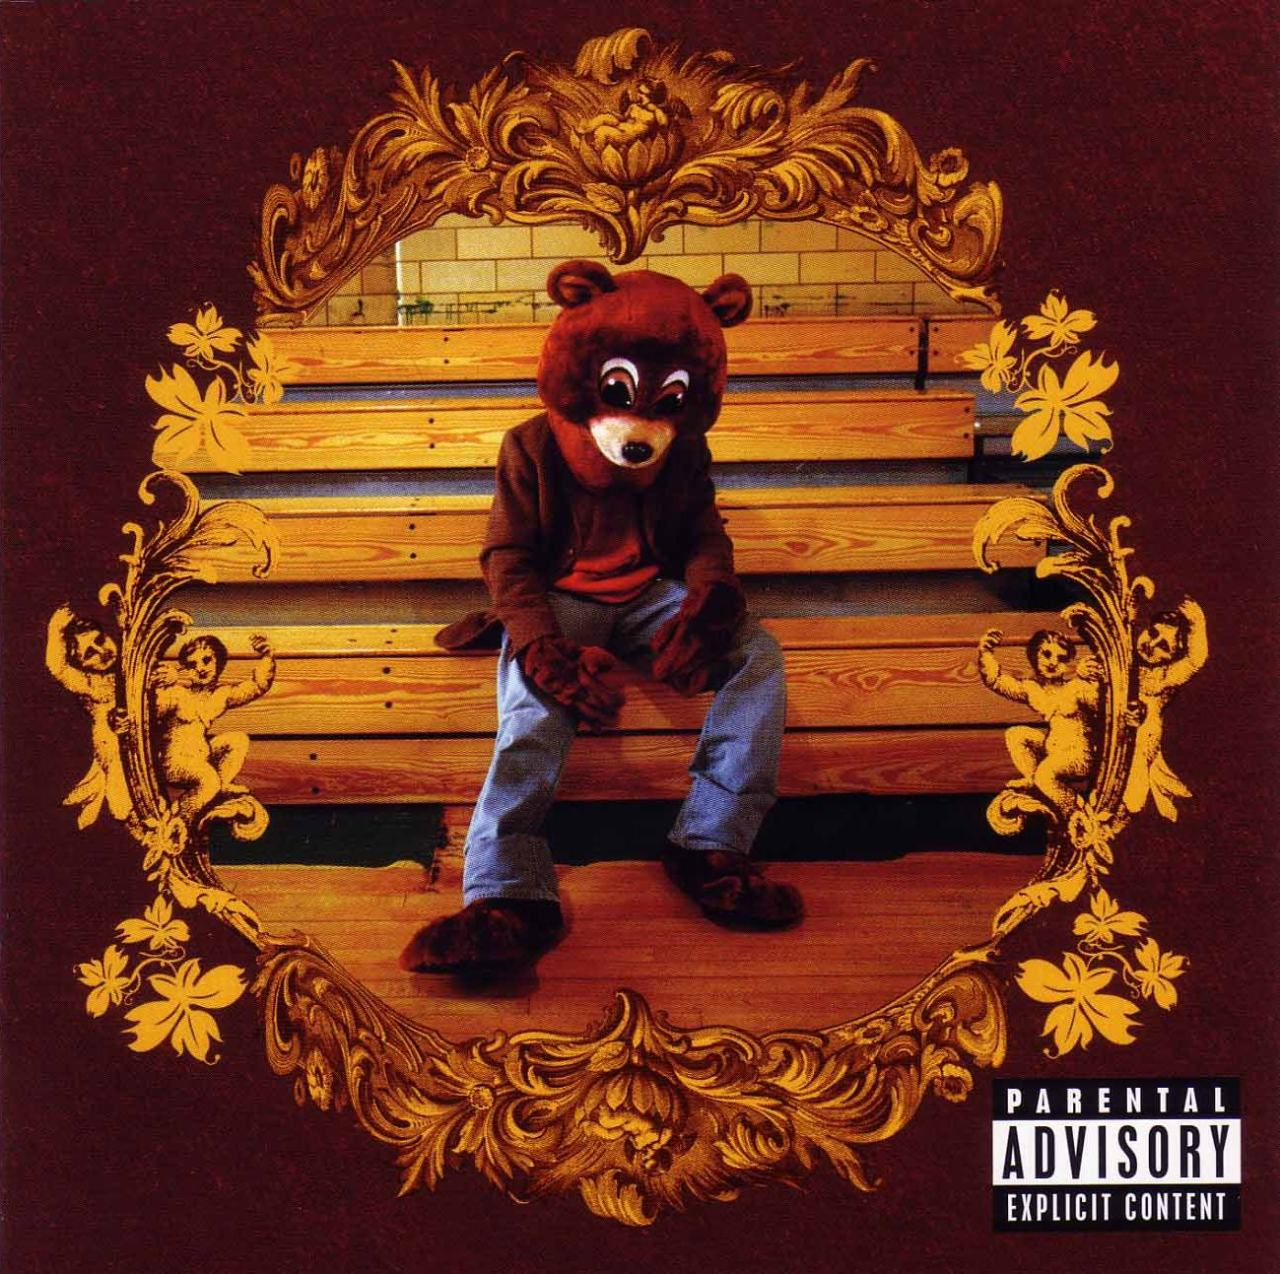 BACK IN THE DAY |2/10/04| Kanye West released his debut album, The College Dropout, on Rocafella/Def Jam Records.